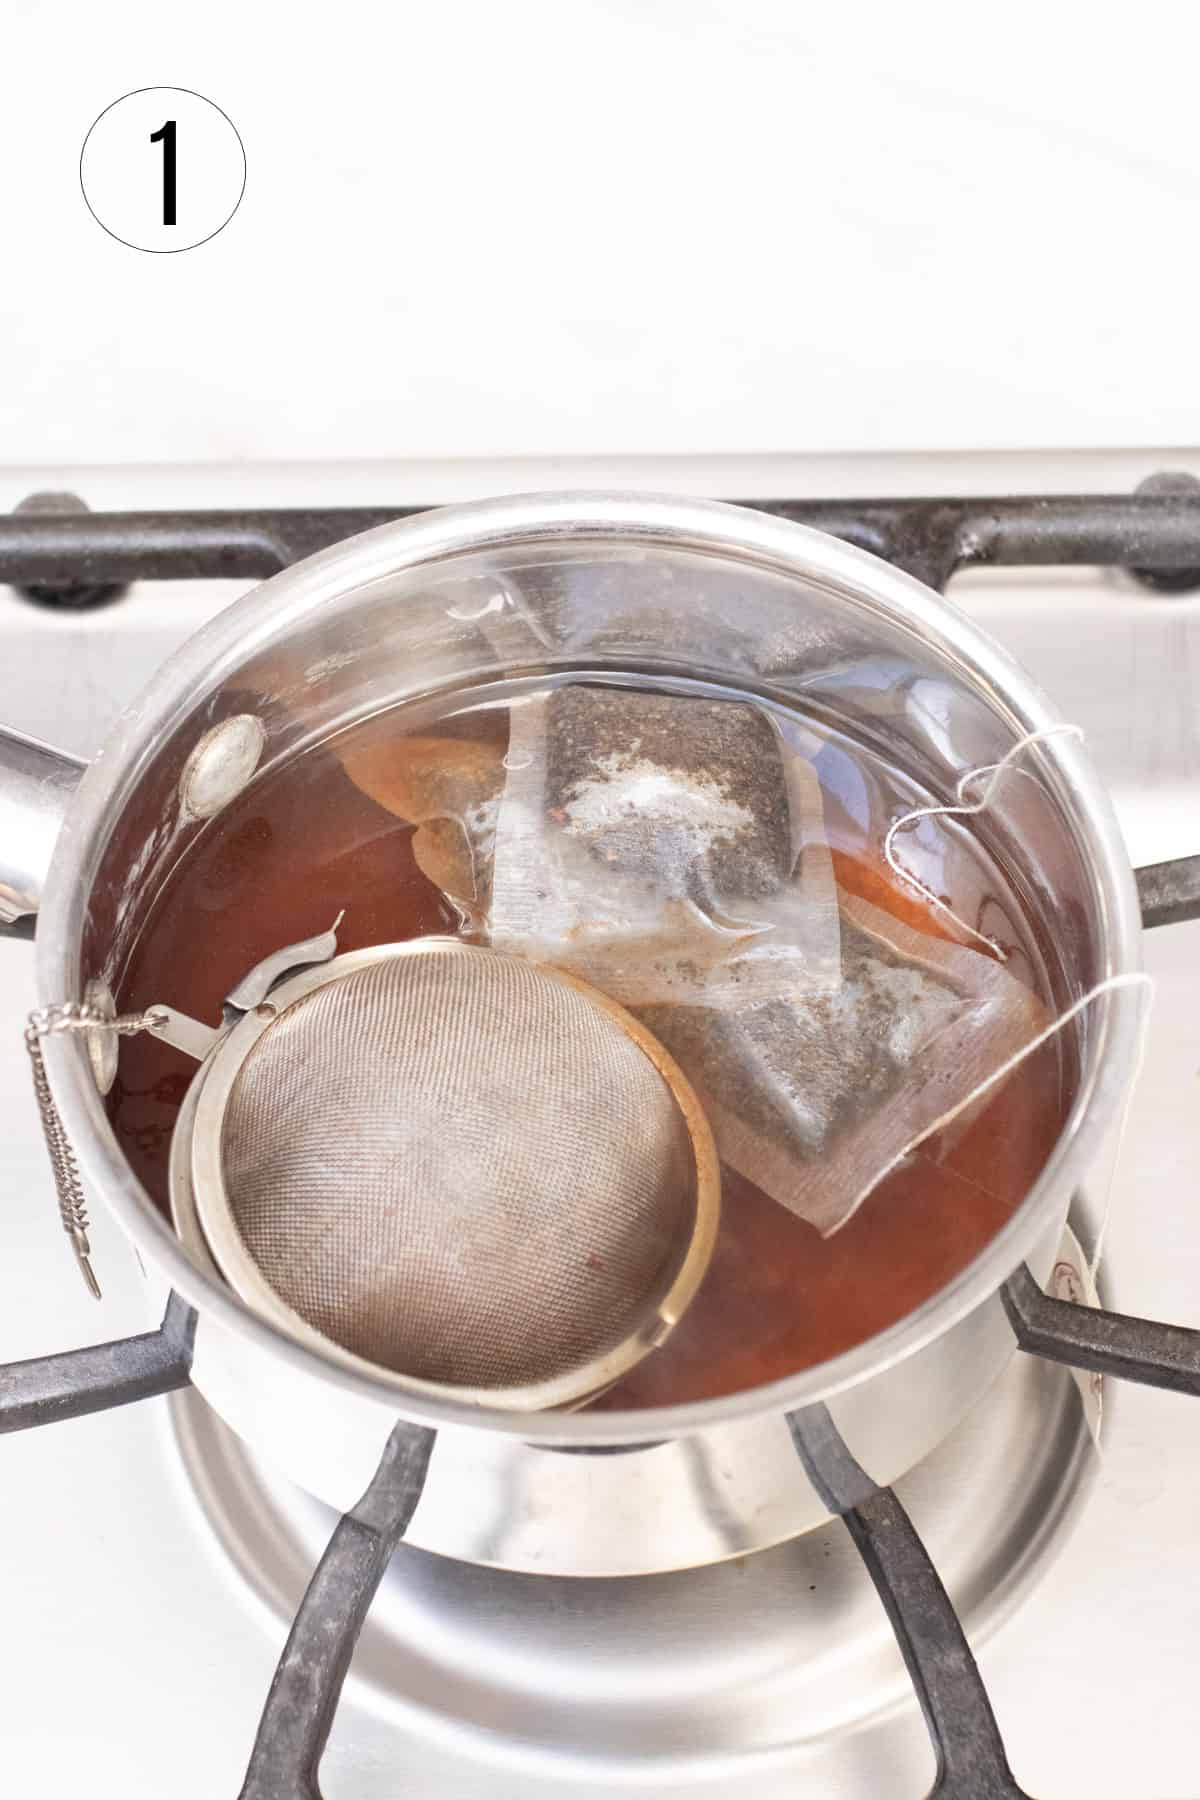 Silver saucepan with tea bags and spice ball steeping over hot stove.